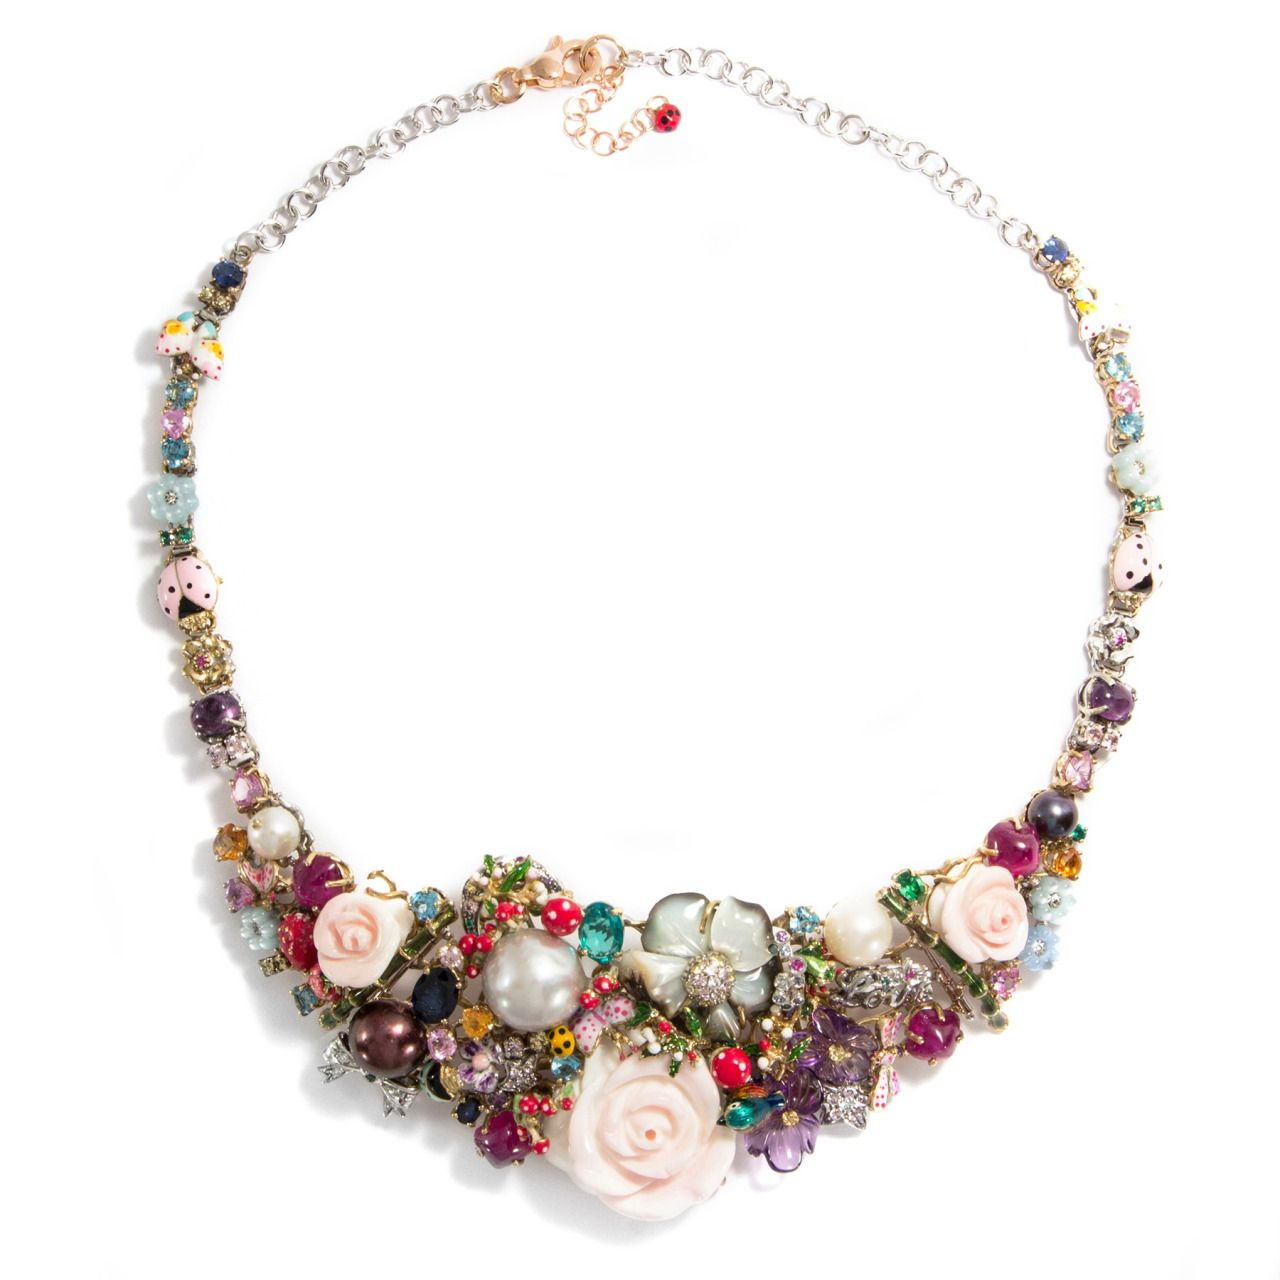 Dreaming in the Garden of MarvelsSpectacular necklace by Santagostino of Italy, now available at Hofer Antikschmuck of Berlin. See more information here!Find this and more antique jewellery at www.hofer-antikschmuck.de